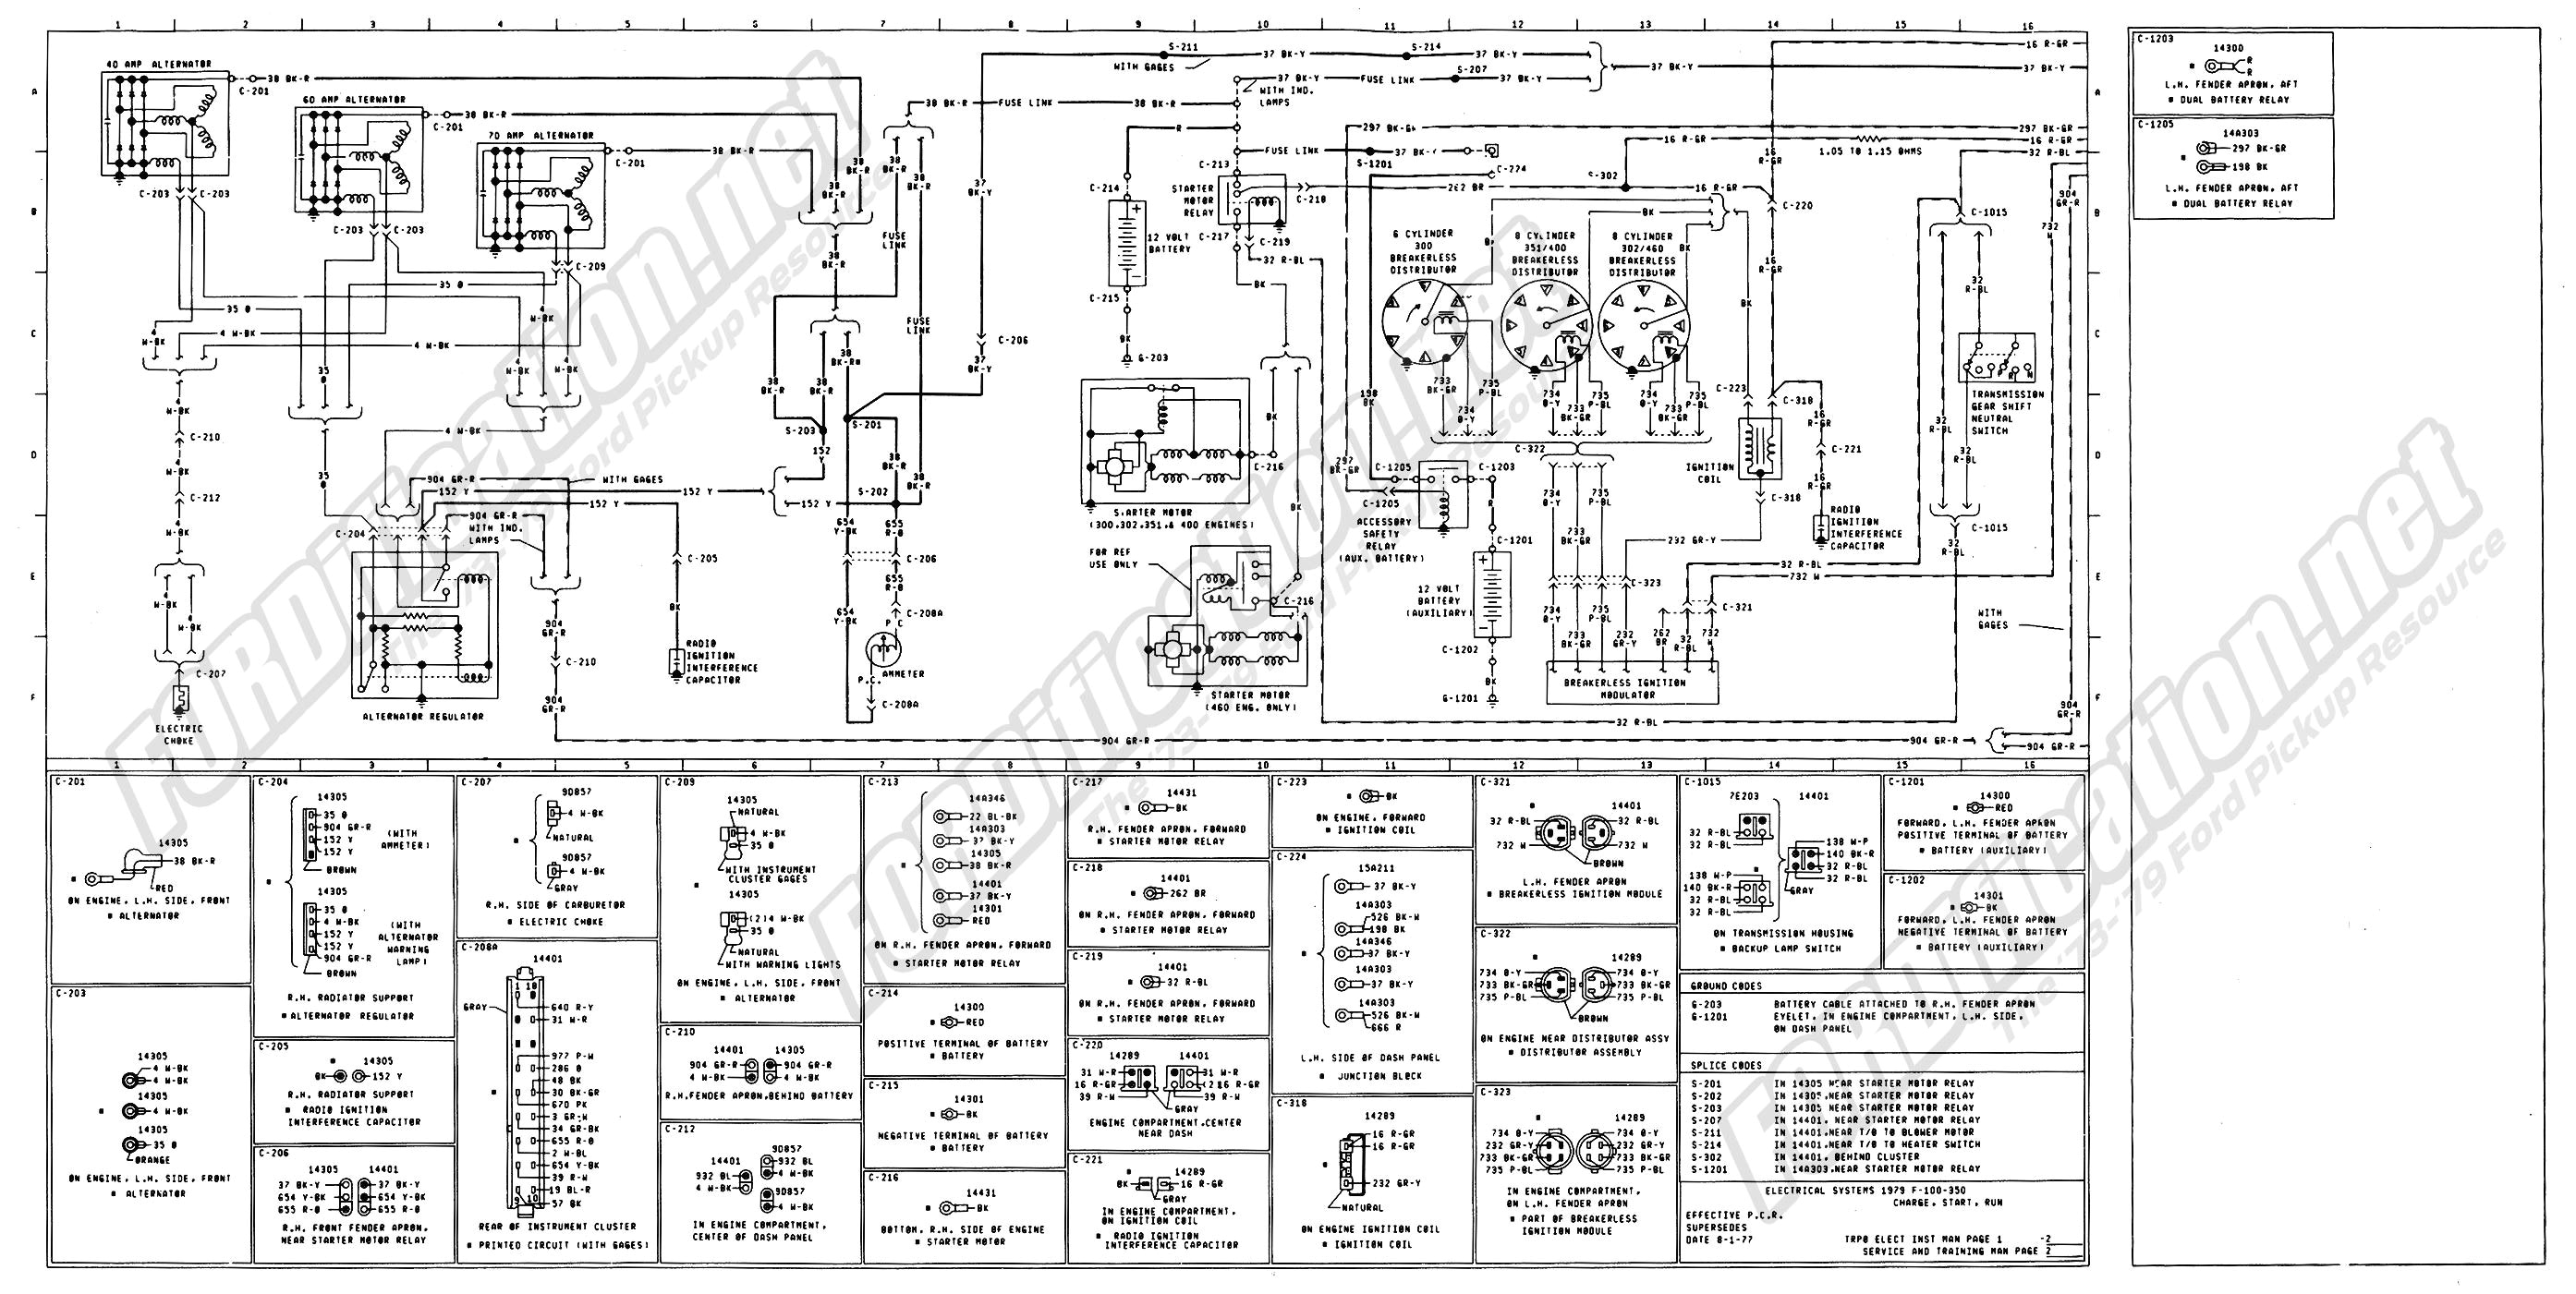 1999 alternator wiring ford truck enthusiasts forums blog wiring 2017 ford truck alternator wiring